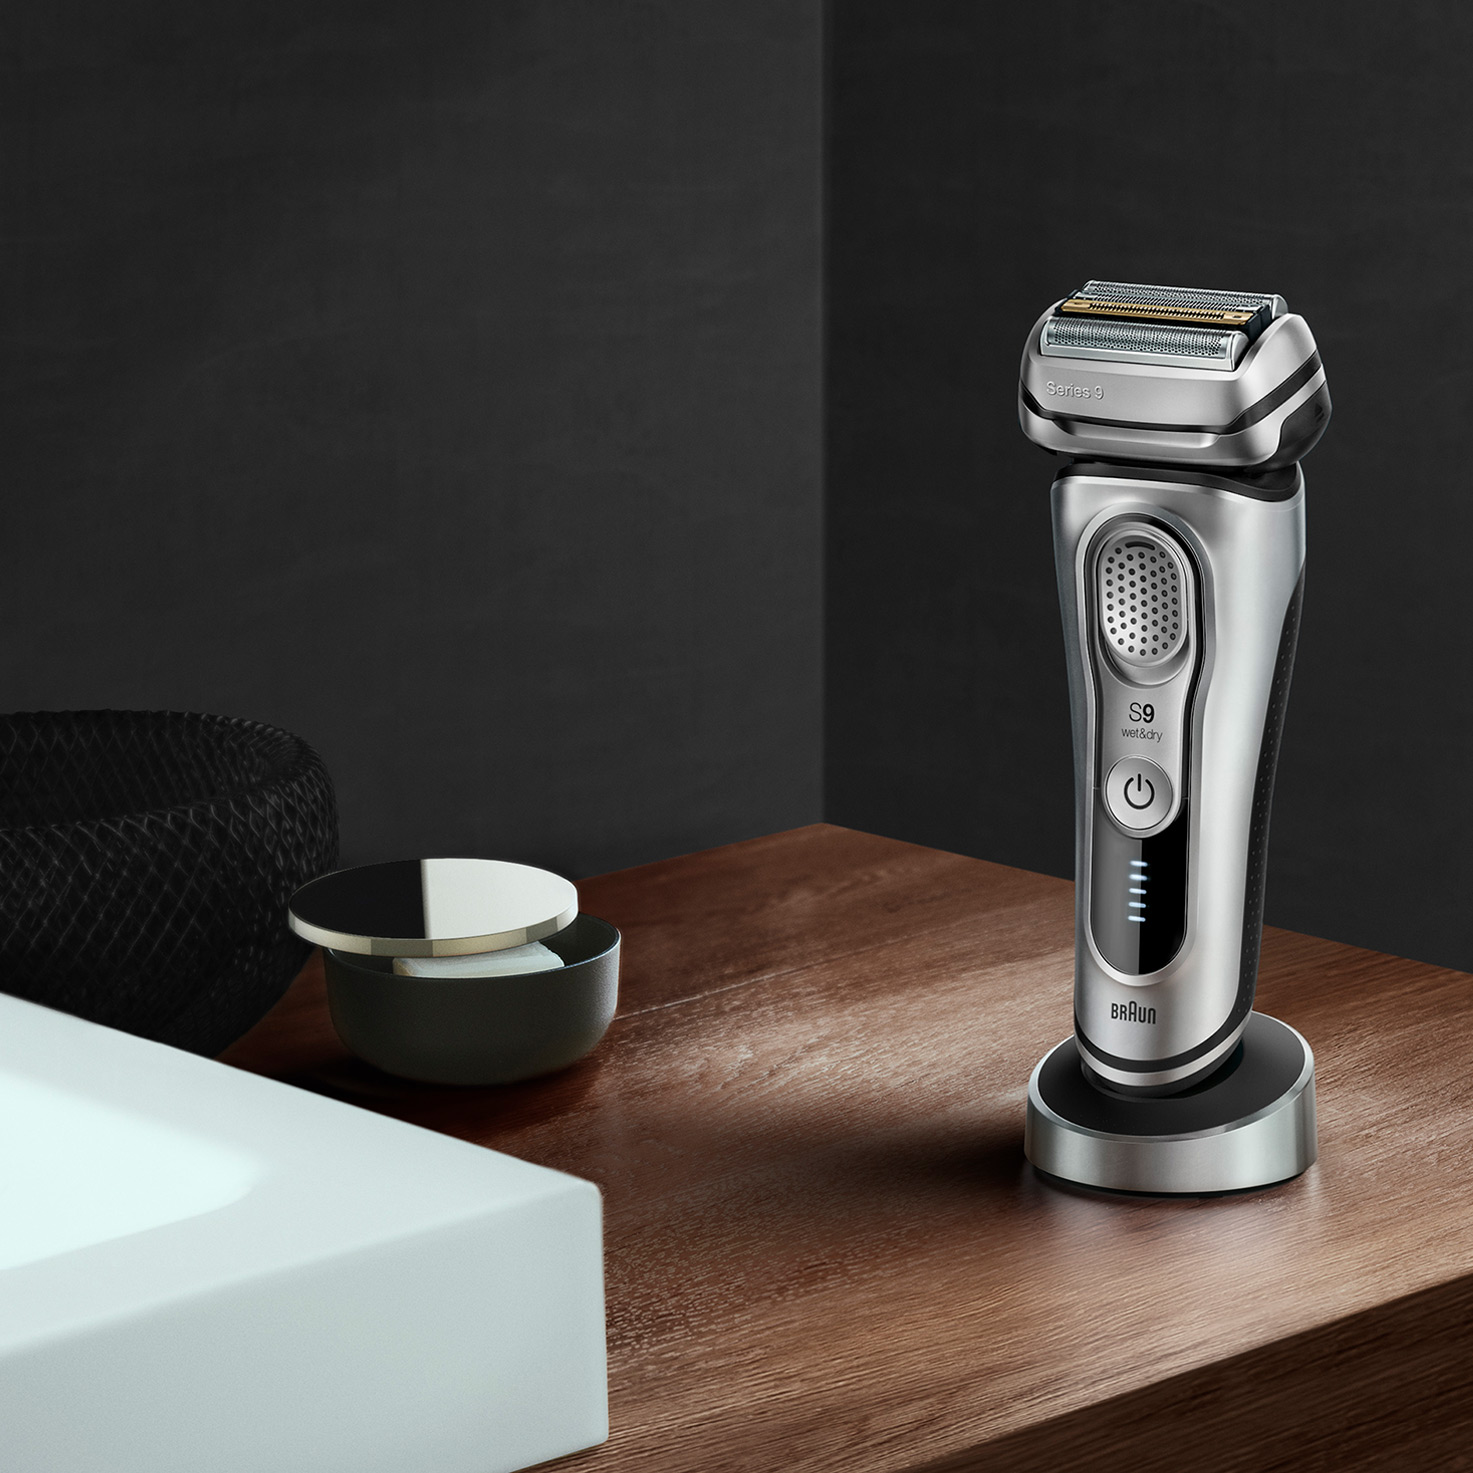 Series 9 9335s shaver in charging stand